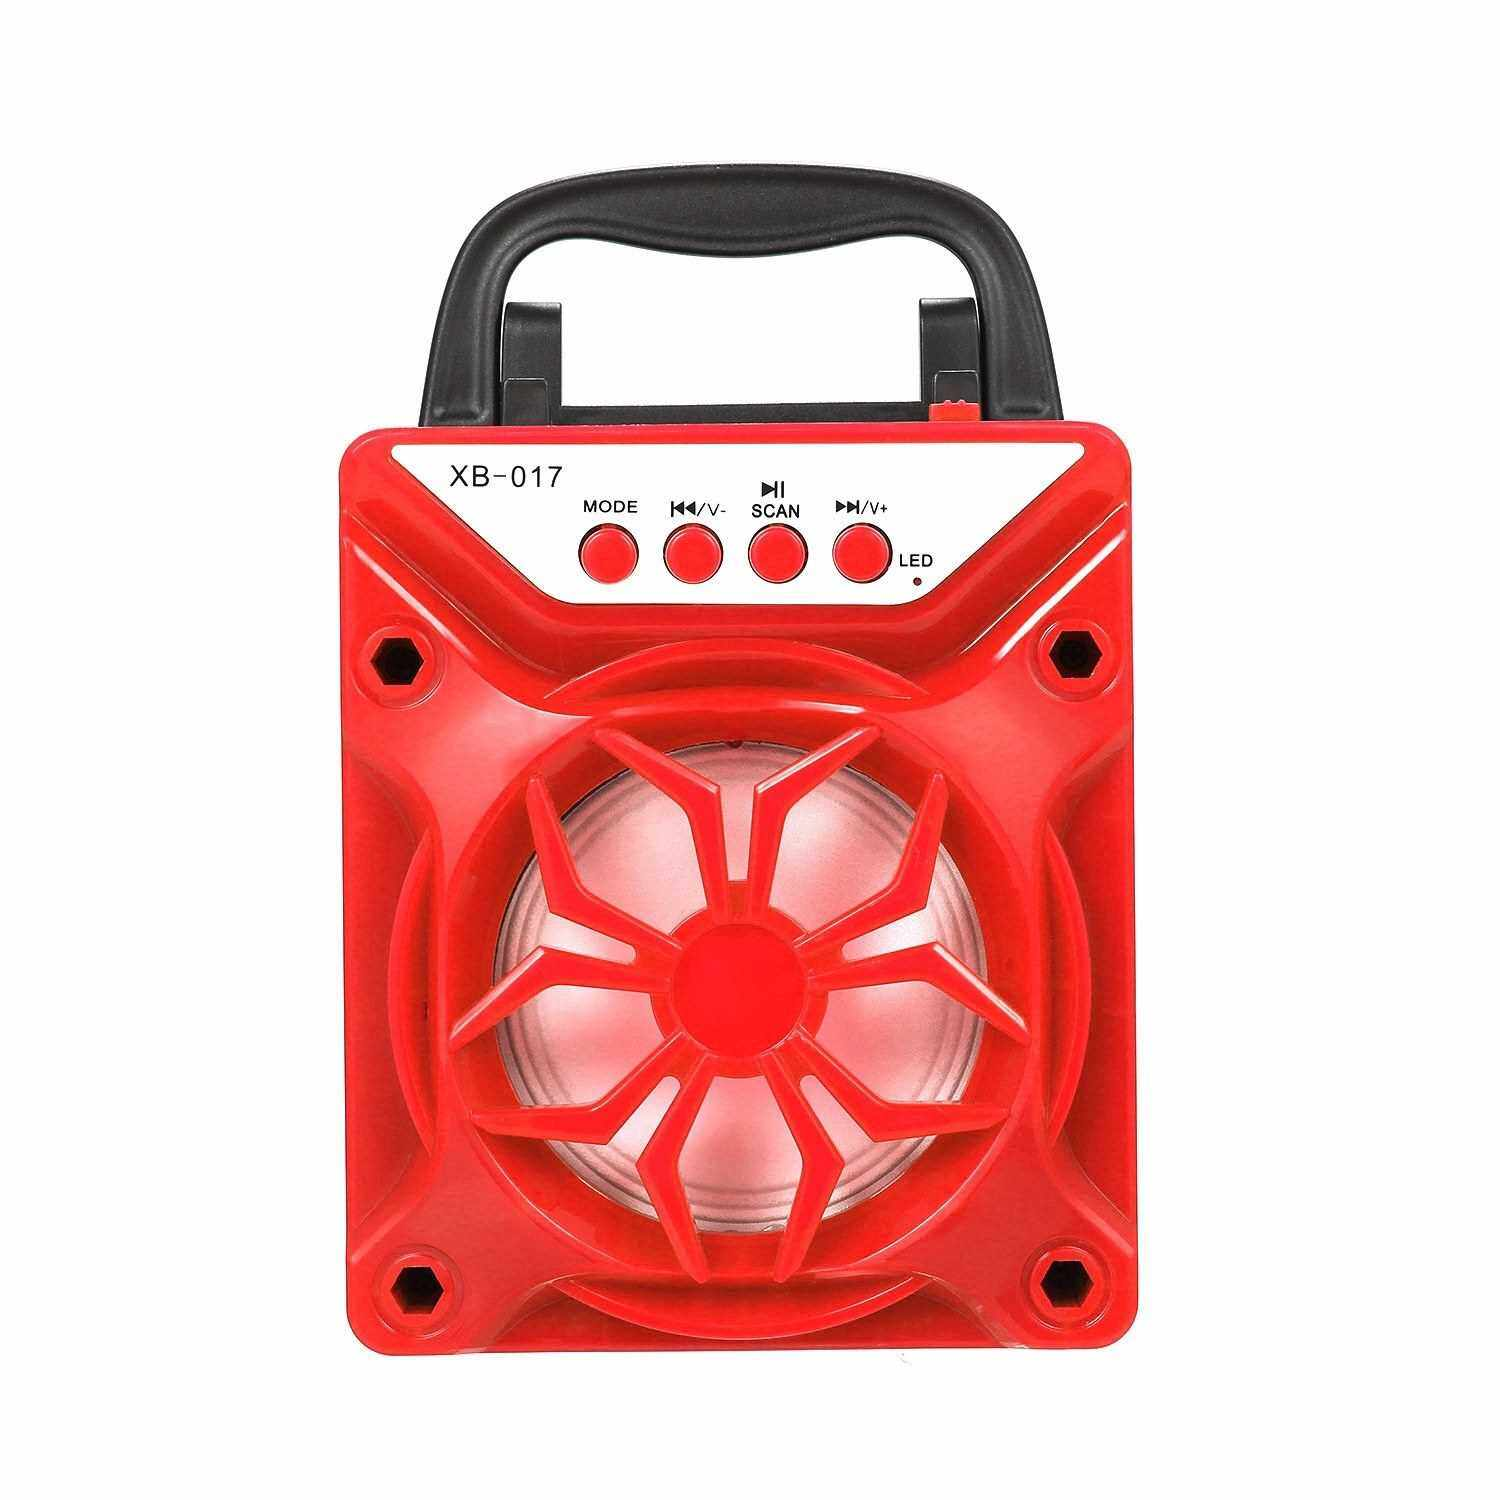 Portable BT Outdoor Speaker Support TF Card Square Dance Audio (Red) (Red)